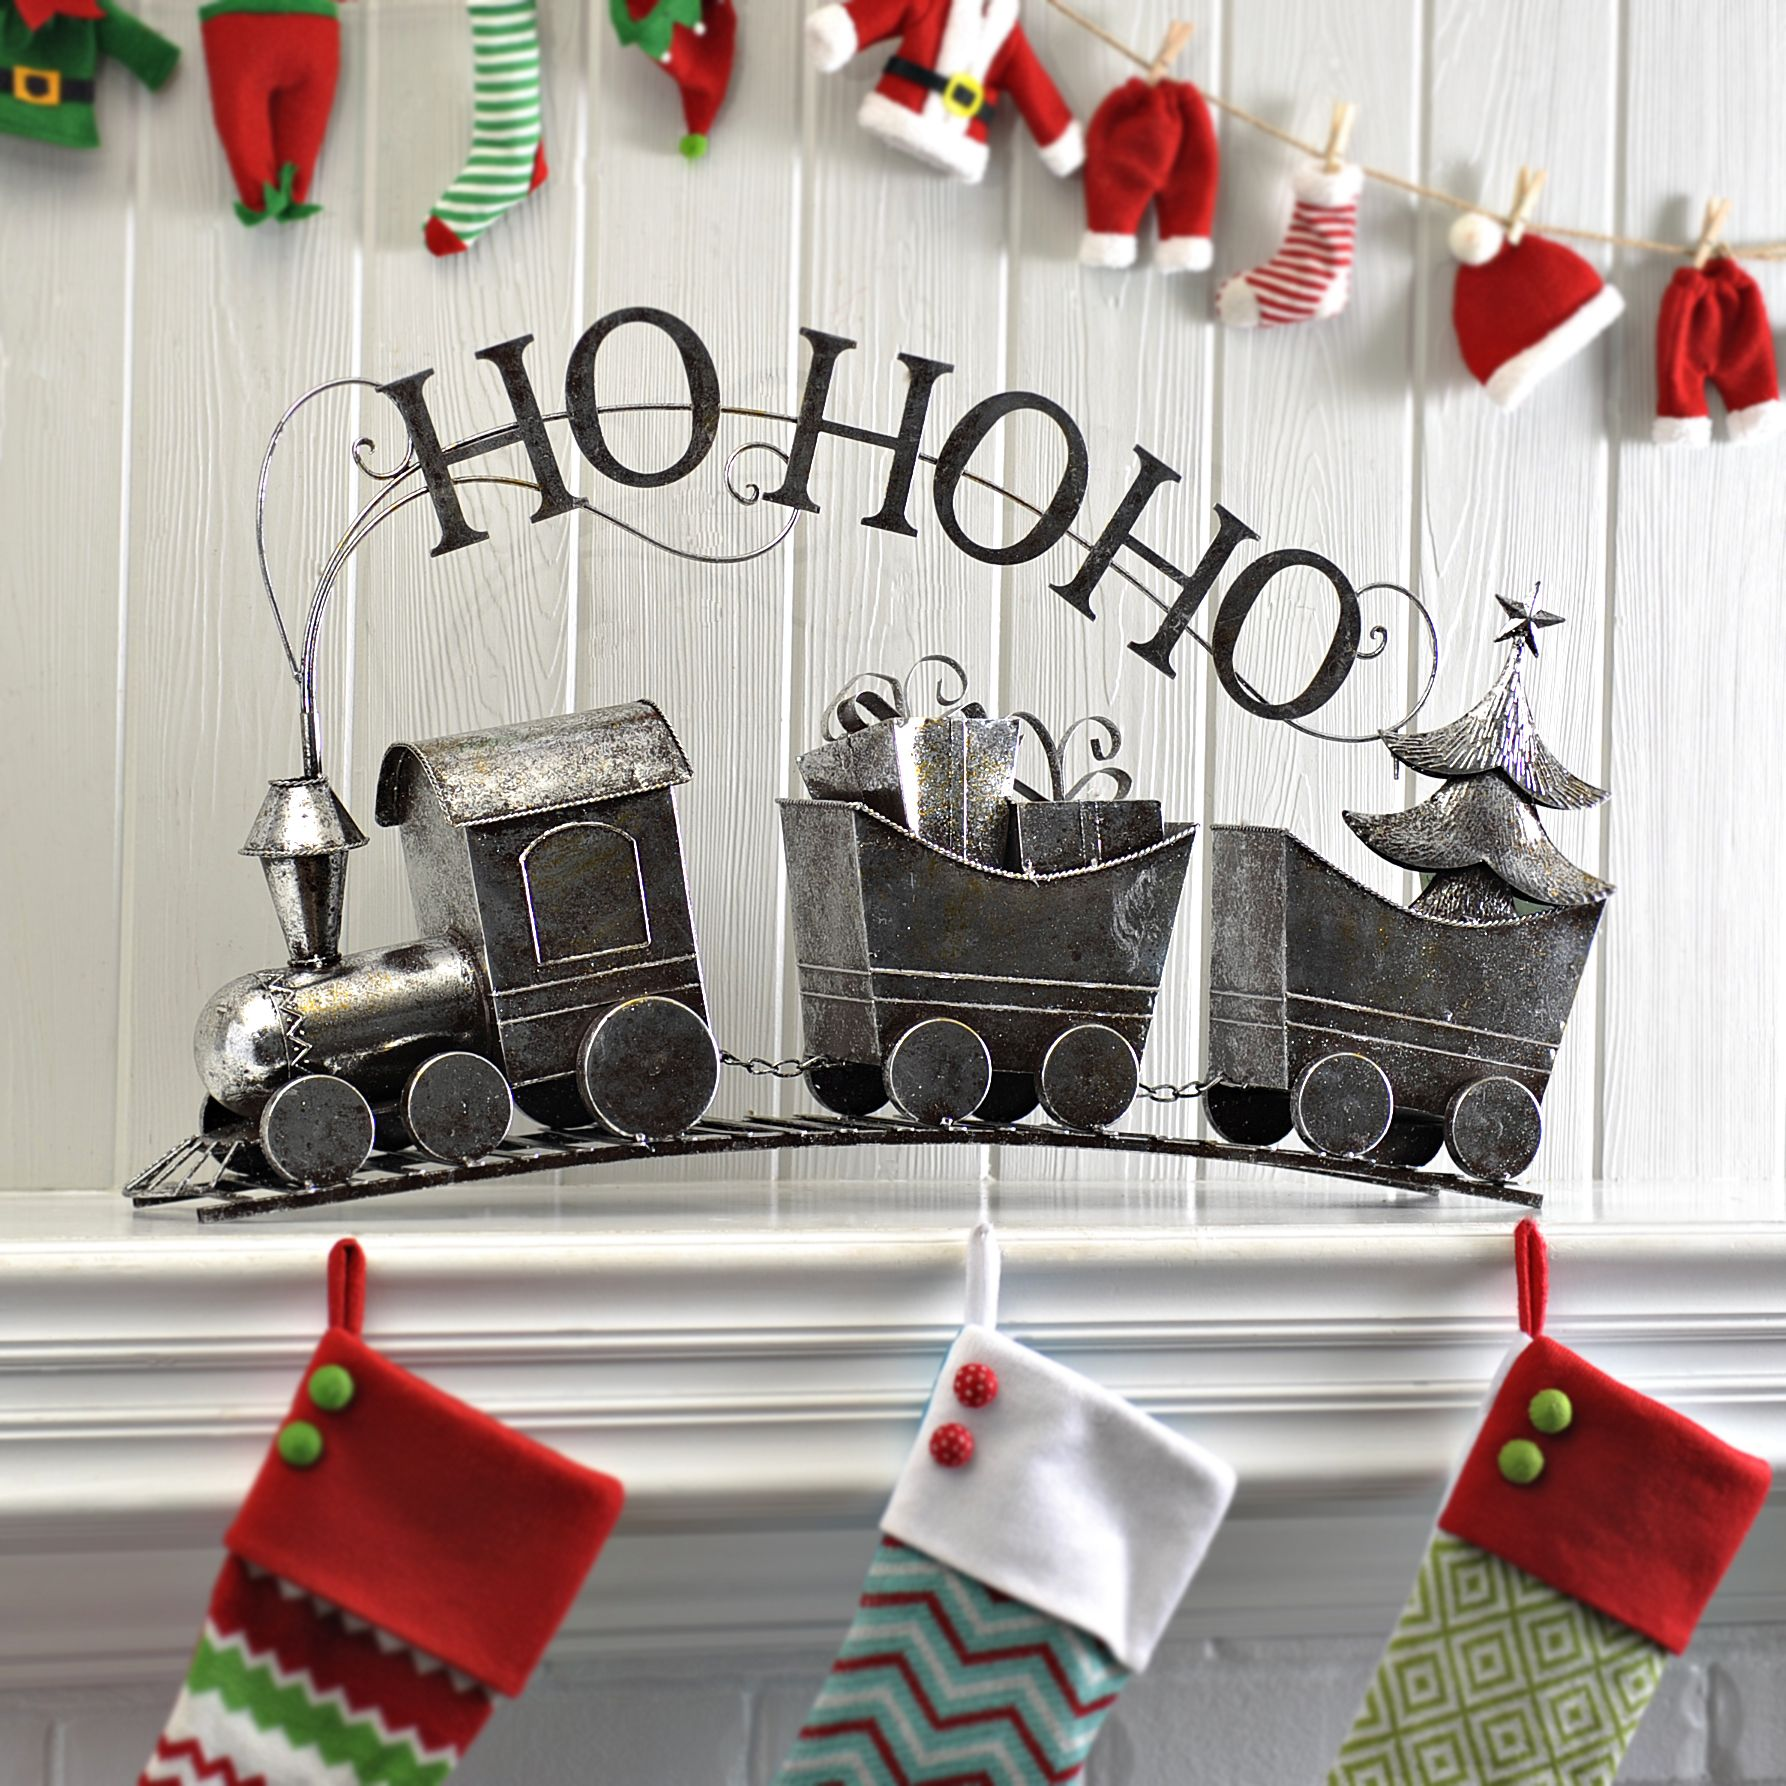 Ho Christmas Train.Product Details Ho Ho Ho Train Stocking Christmas Train